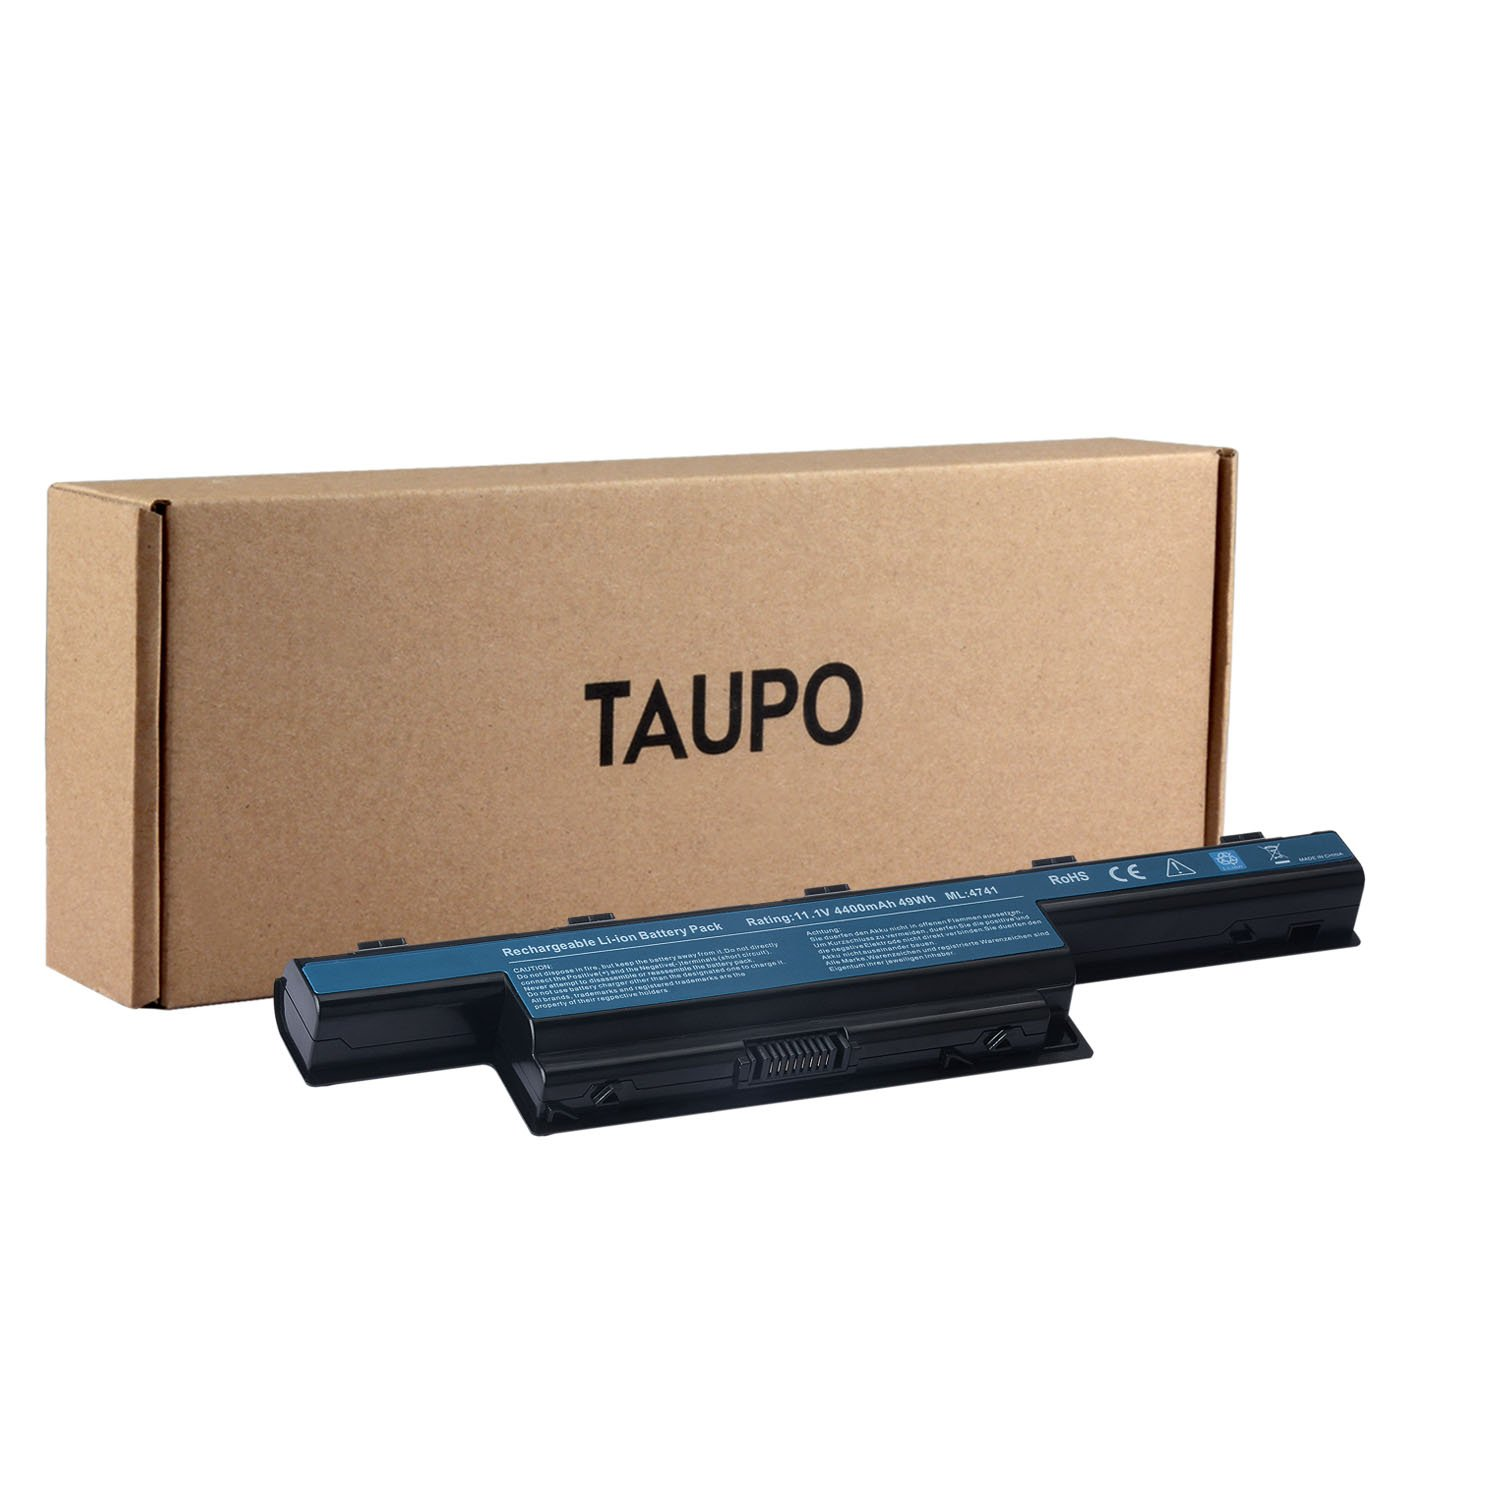 TAUPO New Laptop Battery Compatible with Acer AS10D31 AS10D51, Acer Aspire 5253 5251 5336 5349 5551 5552 5560 5733 5733Z 5740 5735 5735Z, Gateway NV55C NV50A NV53A NV59C - 12 Months Warranty